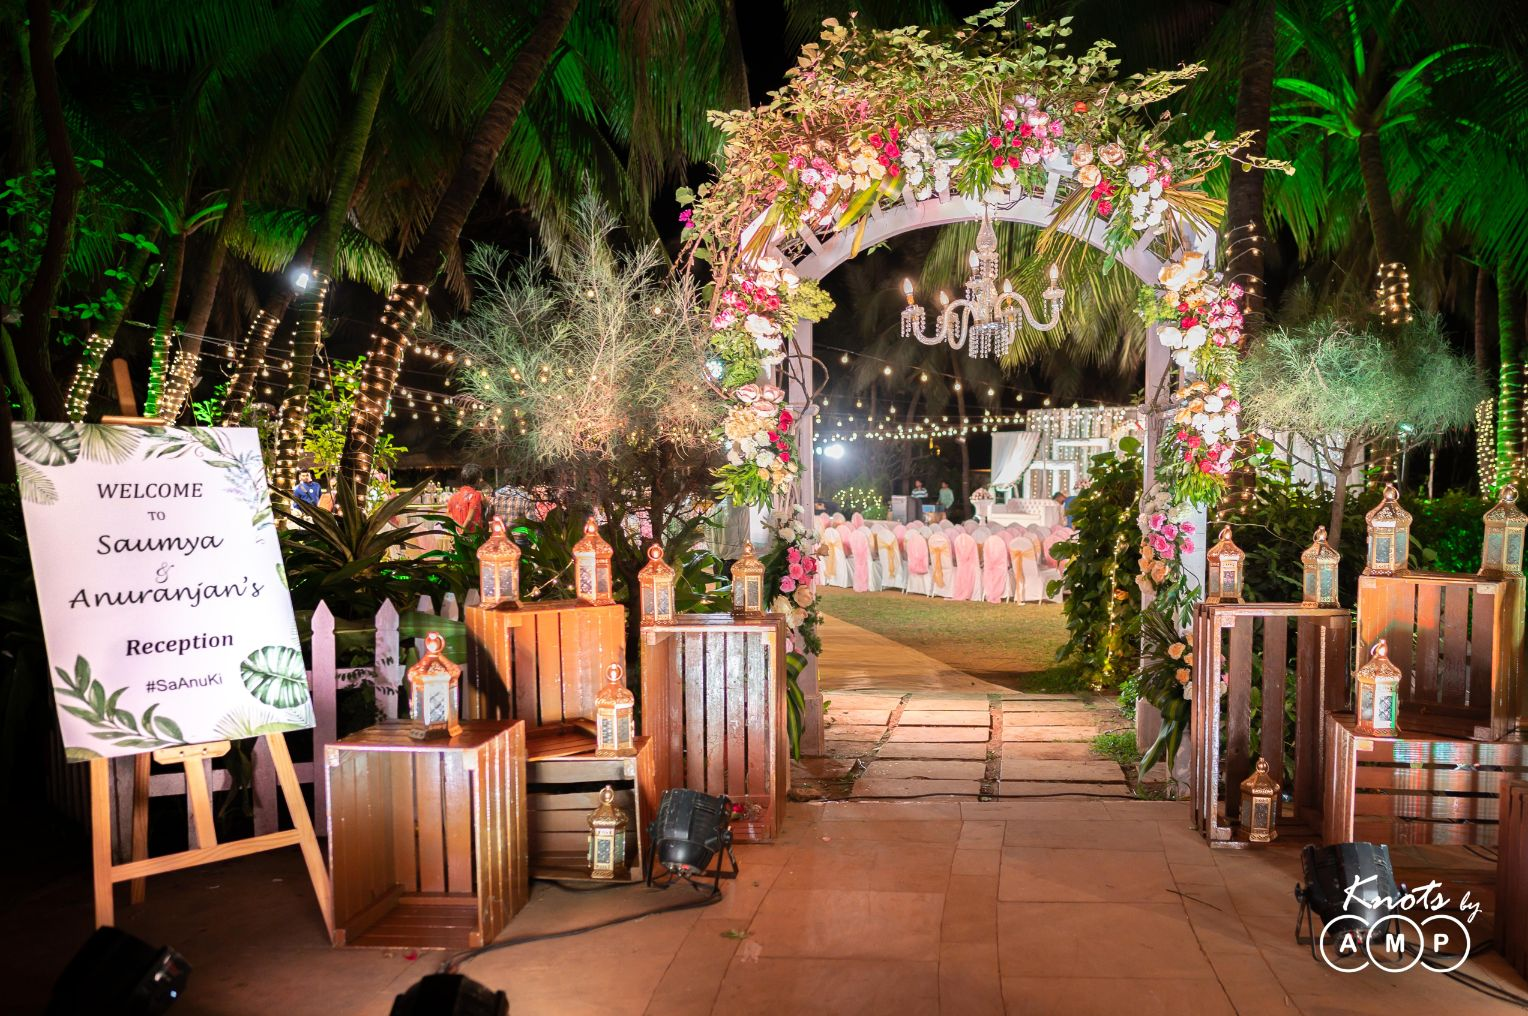 Beautiful Floral Reception Entrance Decor with Lanterns and Welcome Signage